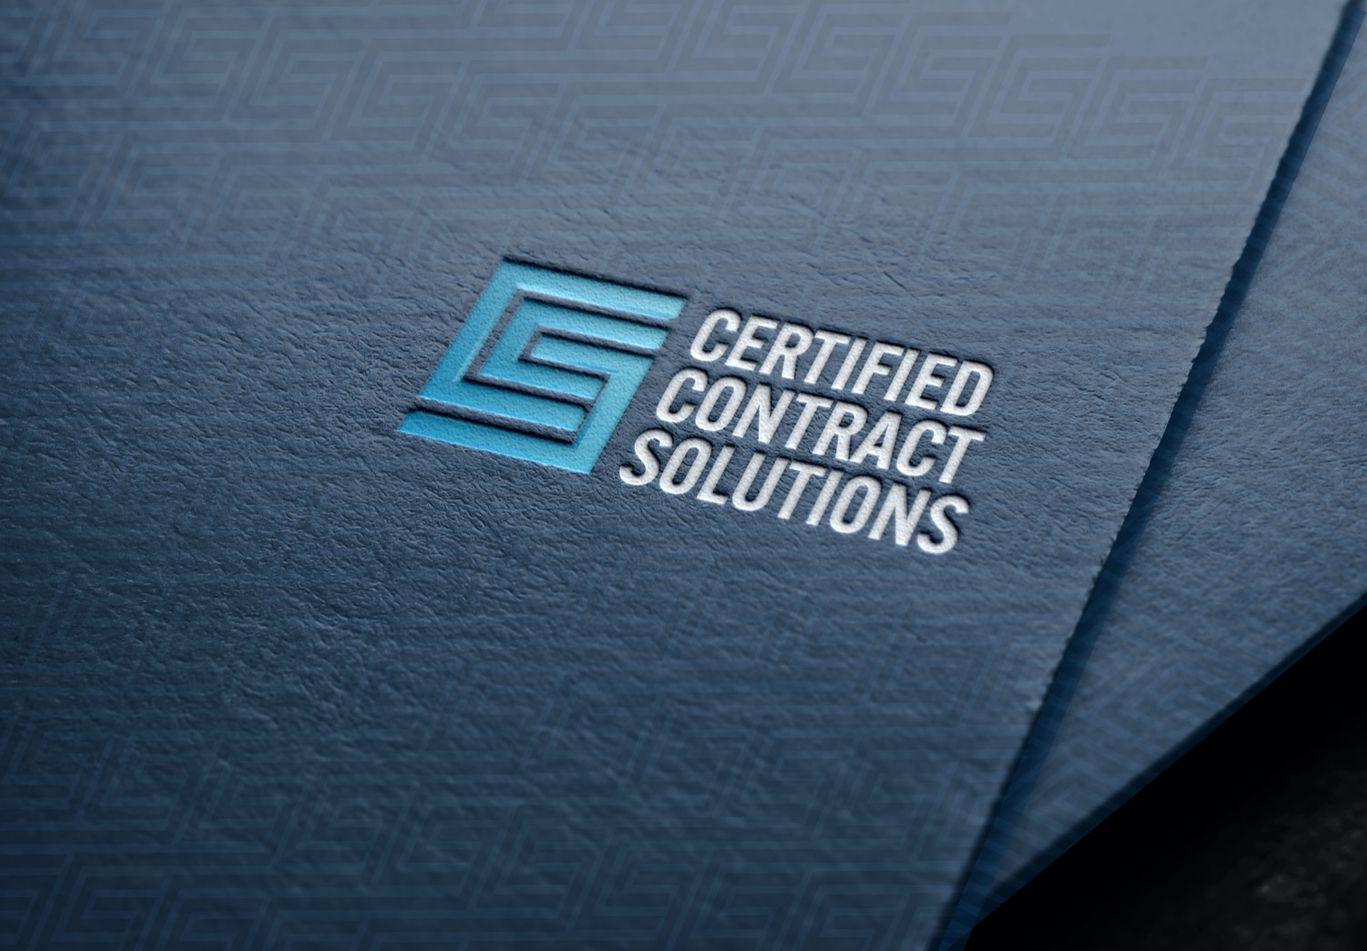 Certified Contract Solutions Brand and Logo Design by Splurge Media